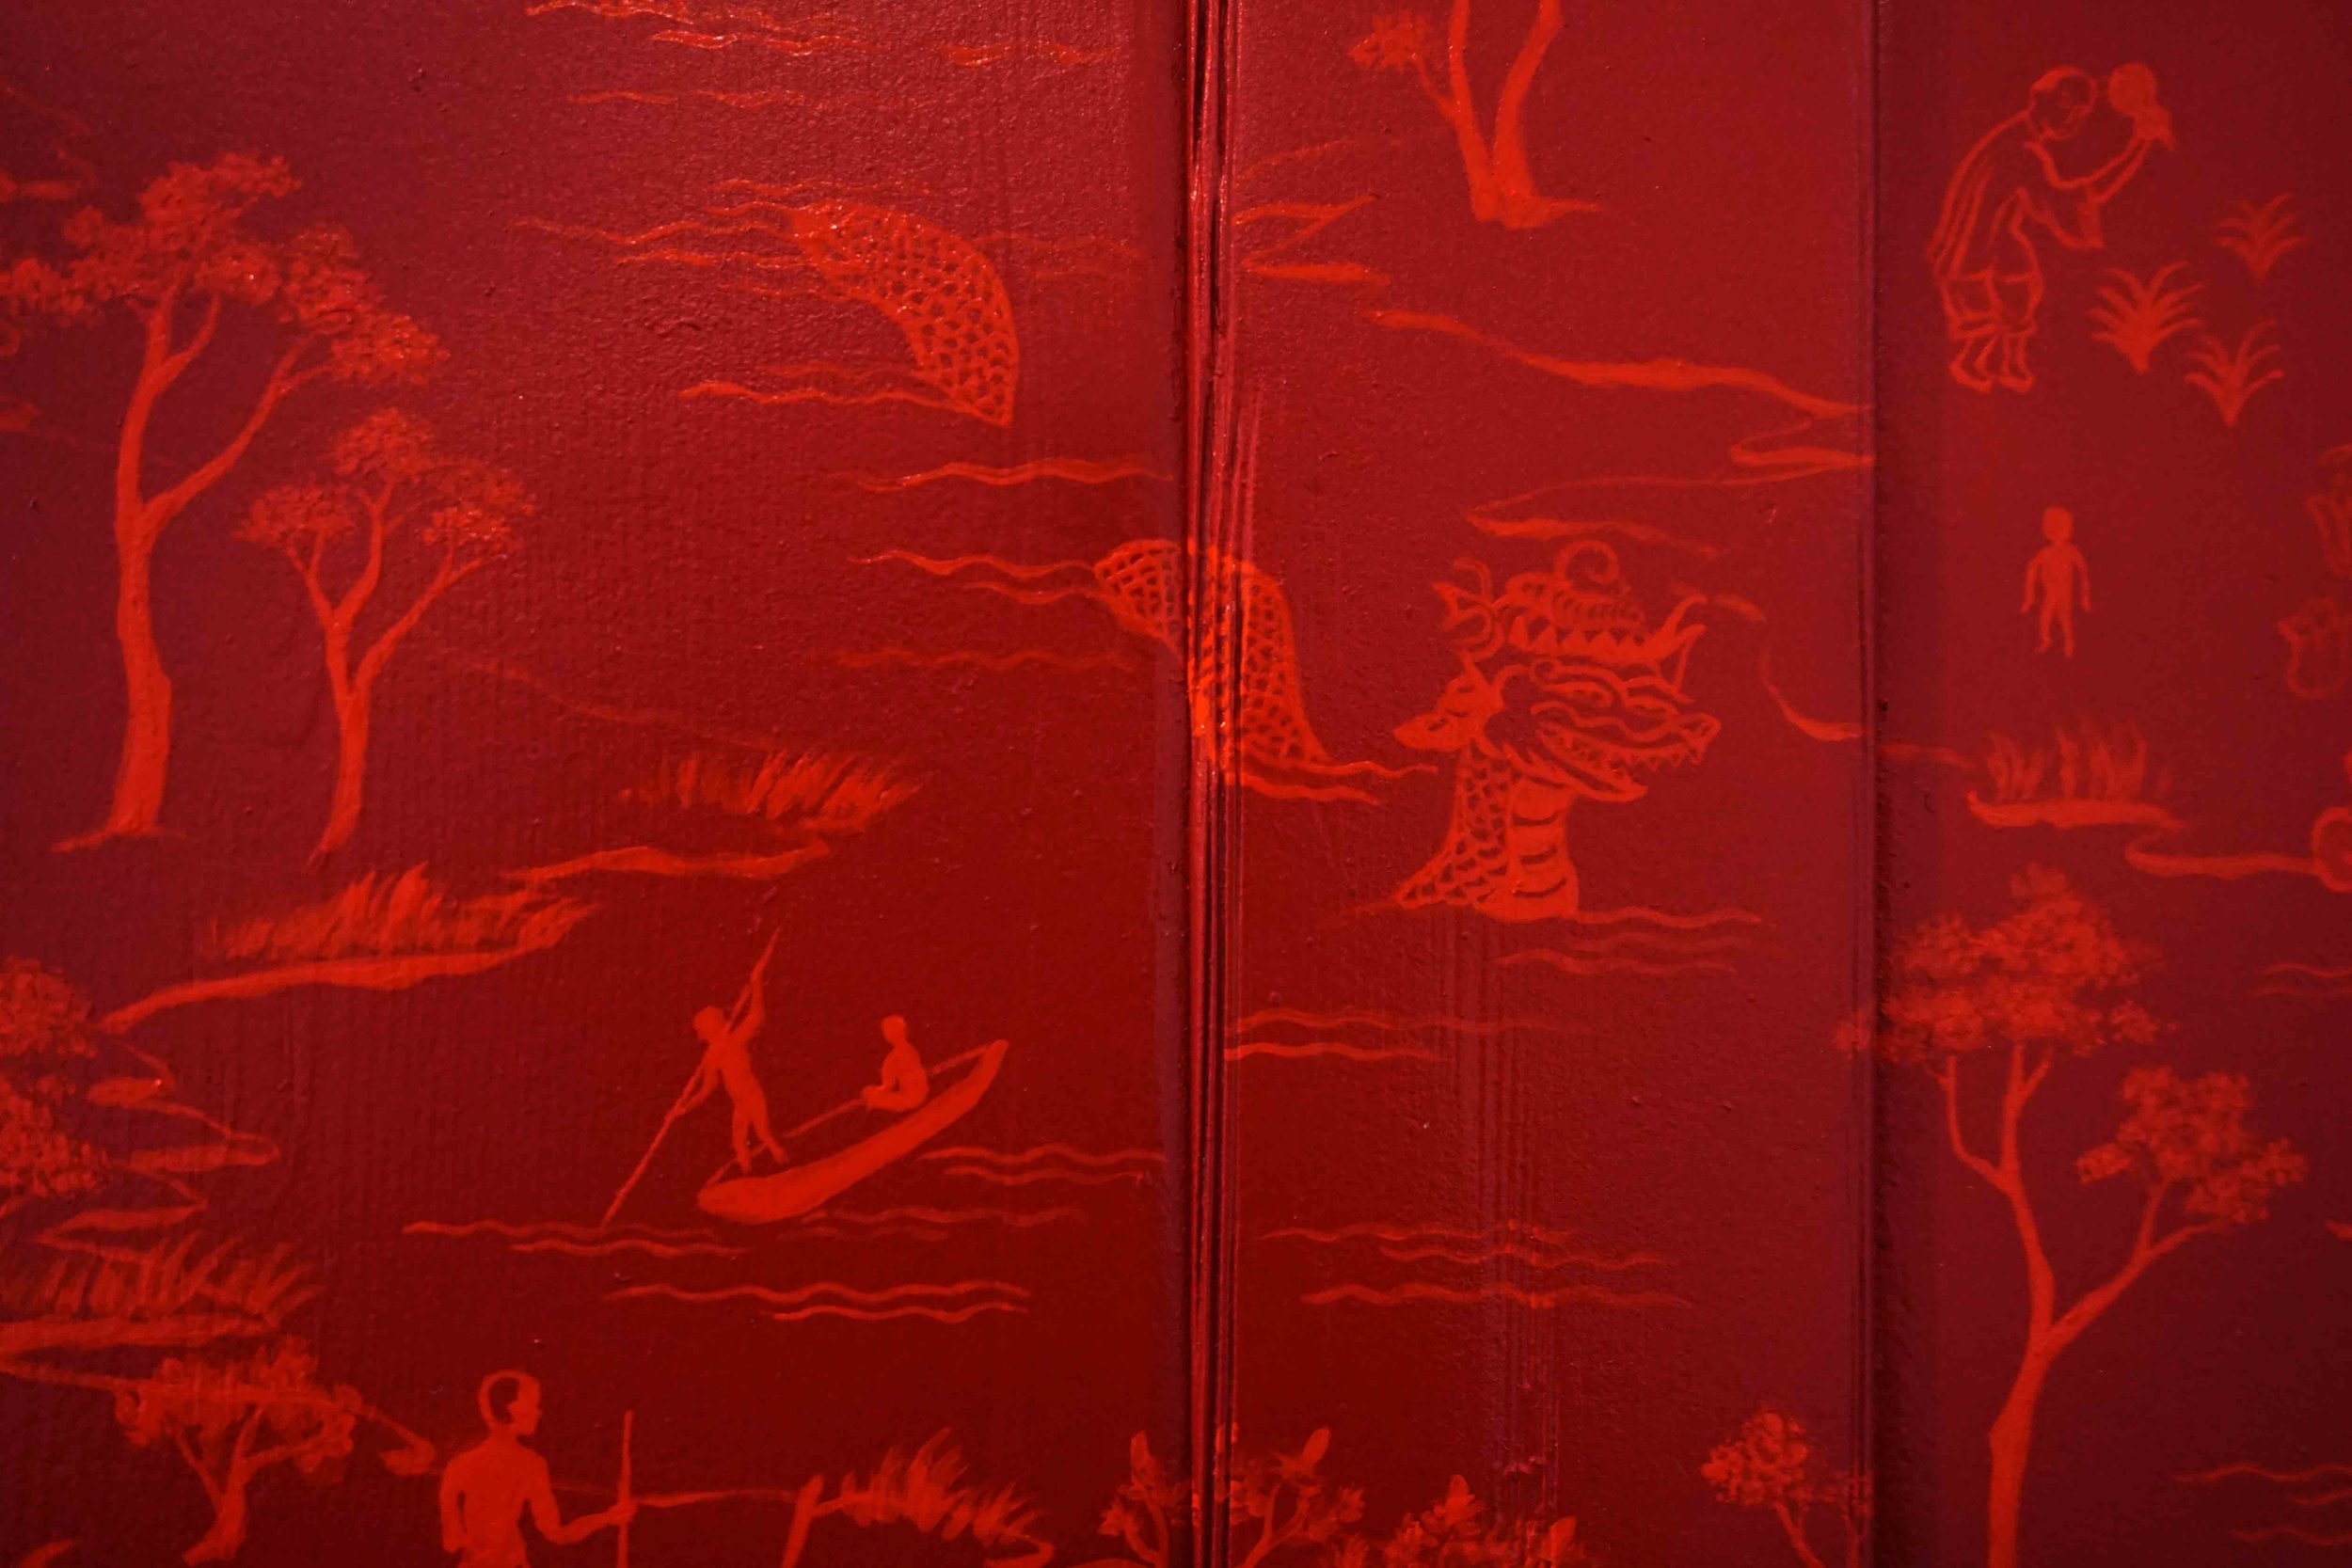 16. Yi Xiao Chen,  Creation Myths  (detail), 2019, red lacquer on Colonial style Victorian mirror, circa 1840s, 77 x 64 x 27 cm POA